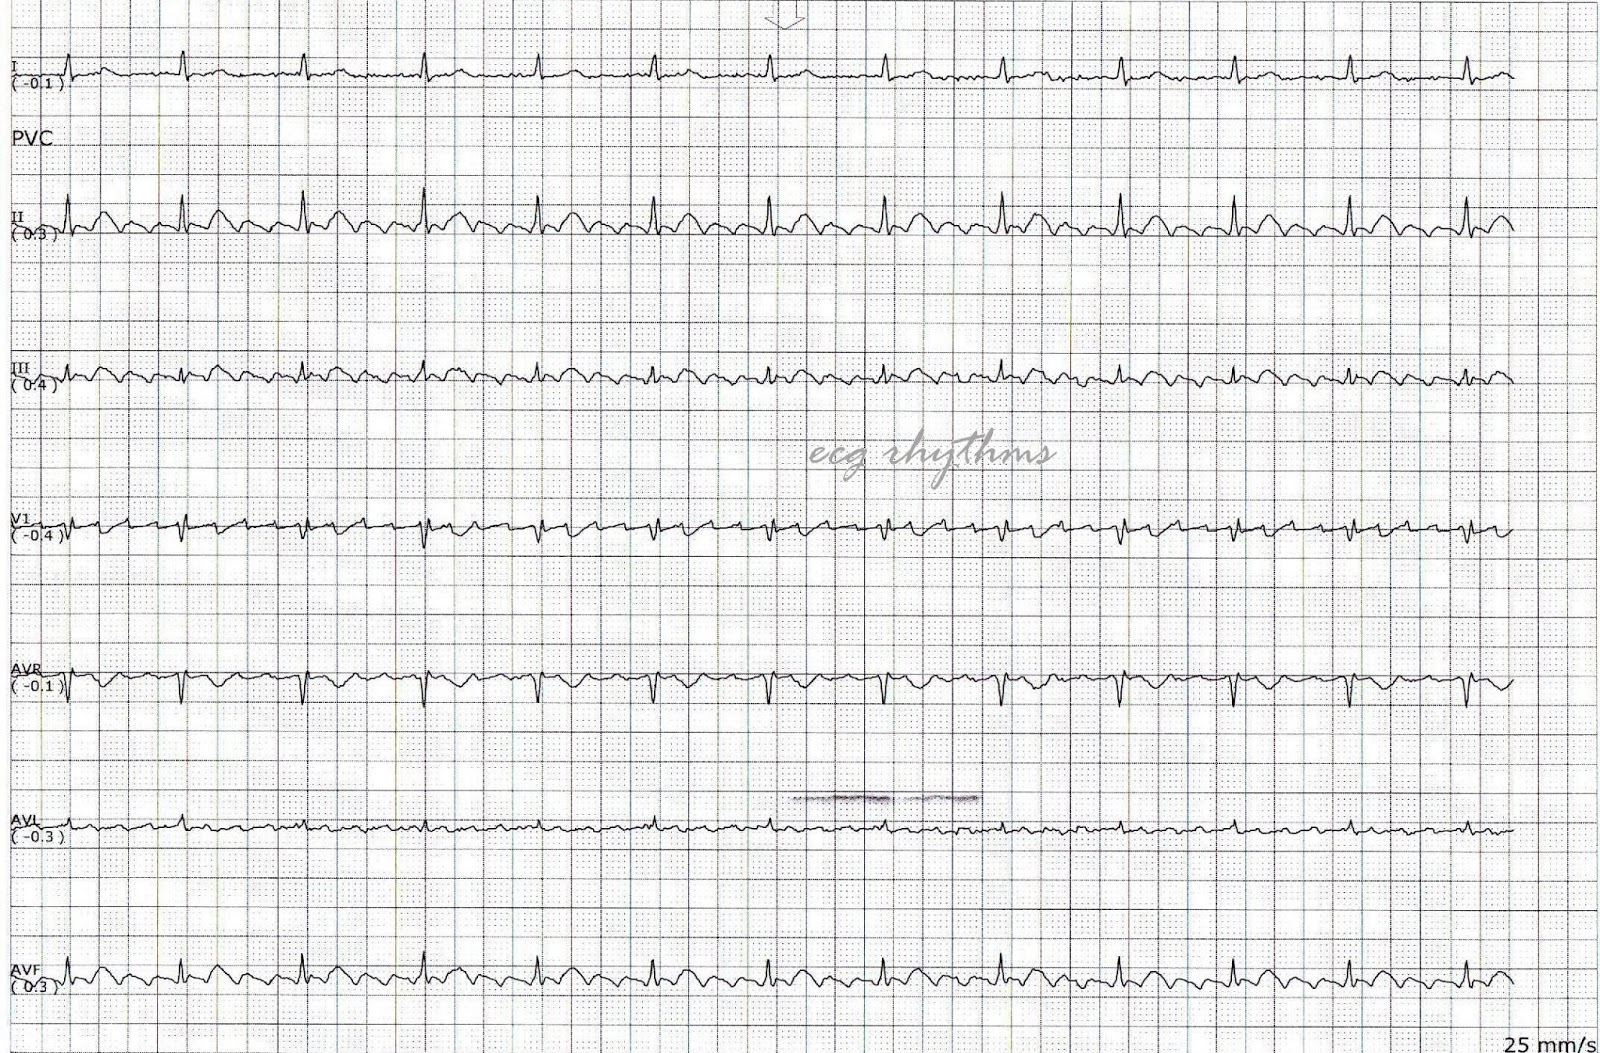 tachycardia and bradycardia